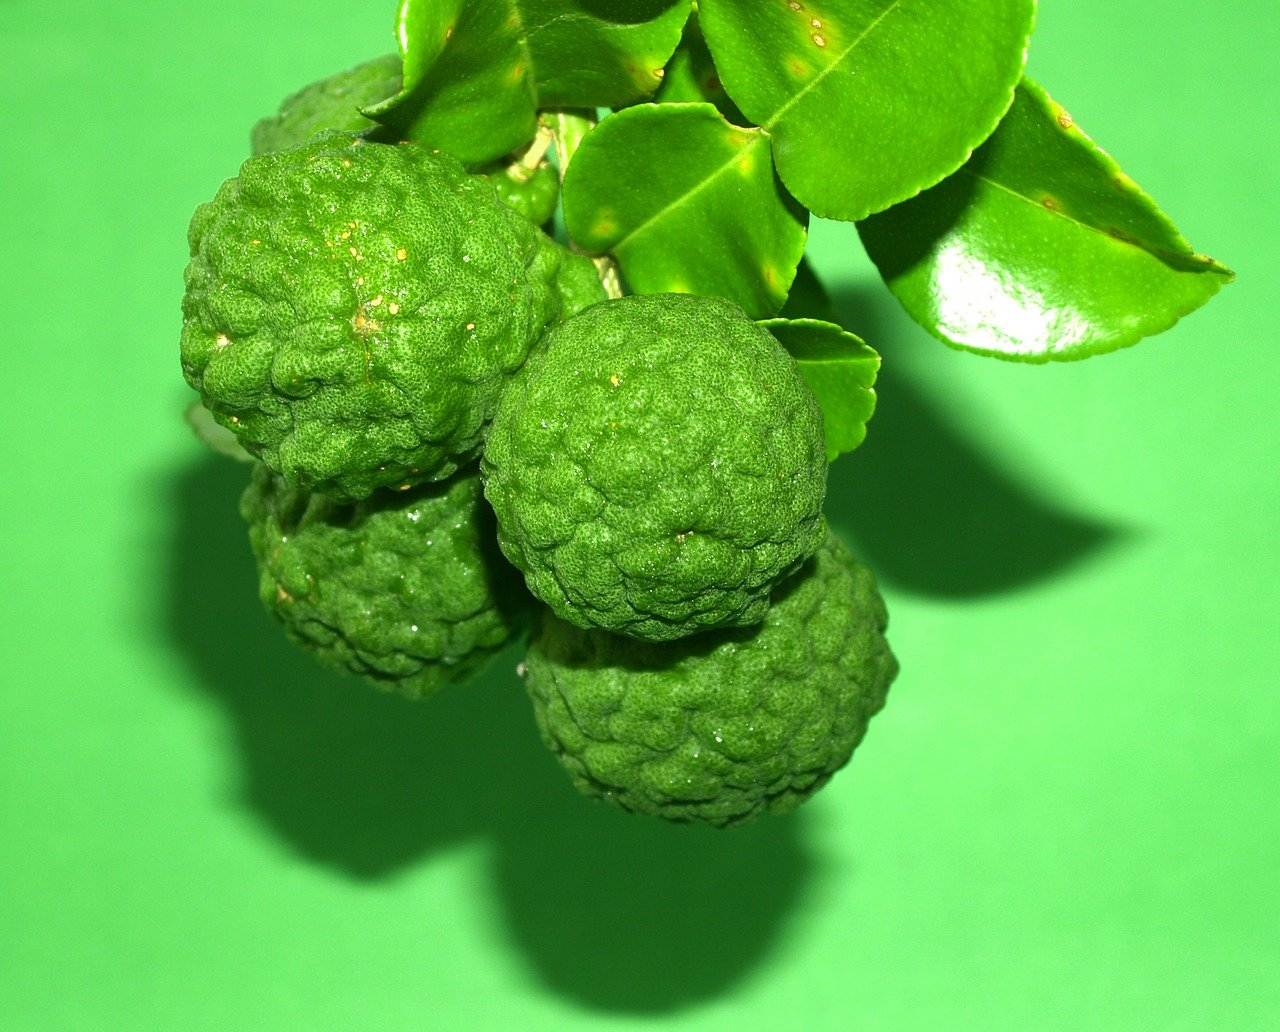 Bright green balls on a kaffir and leaves